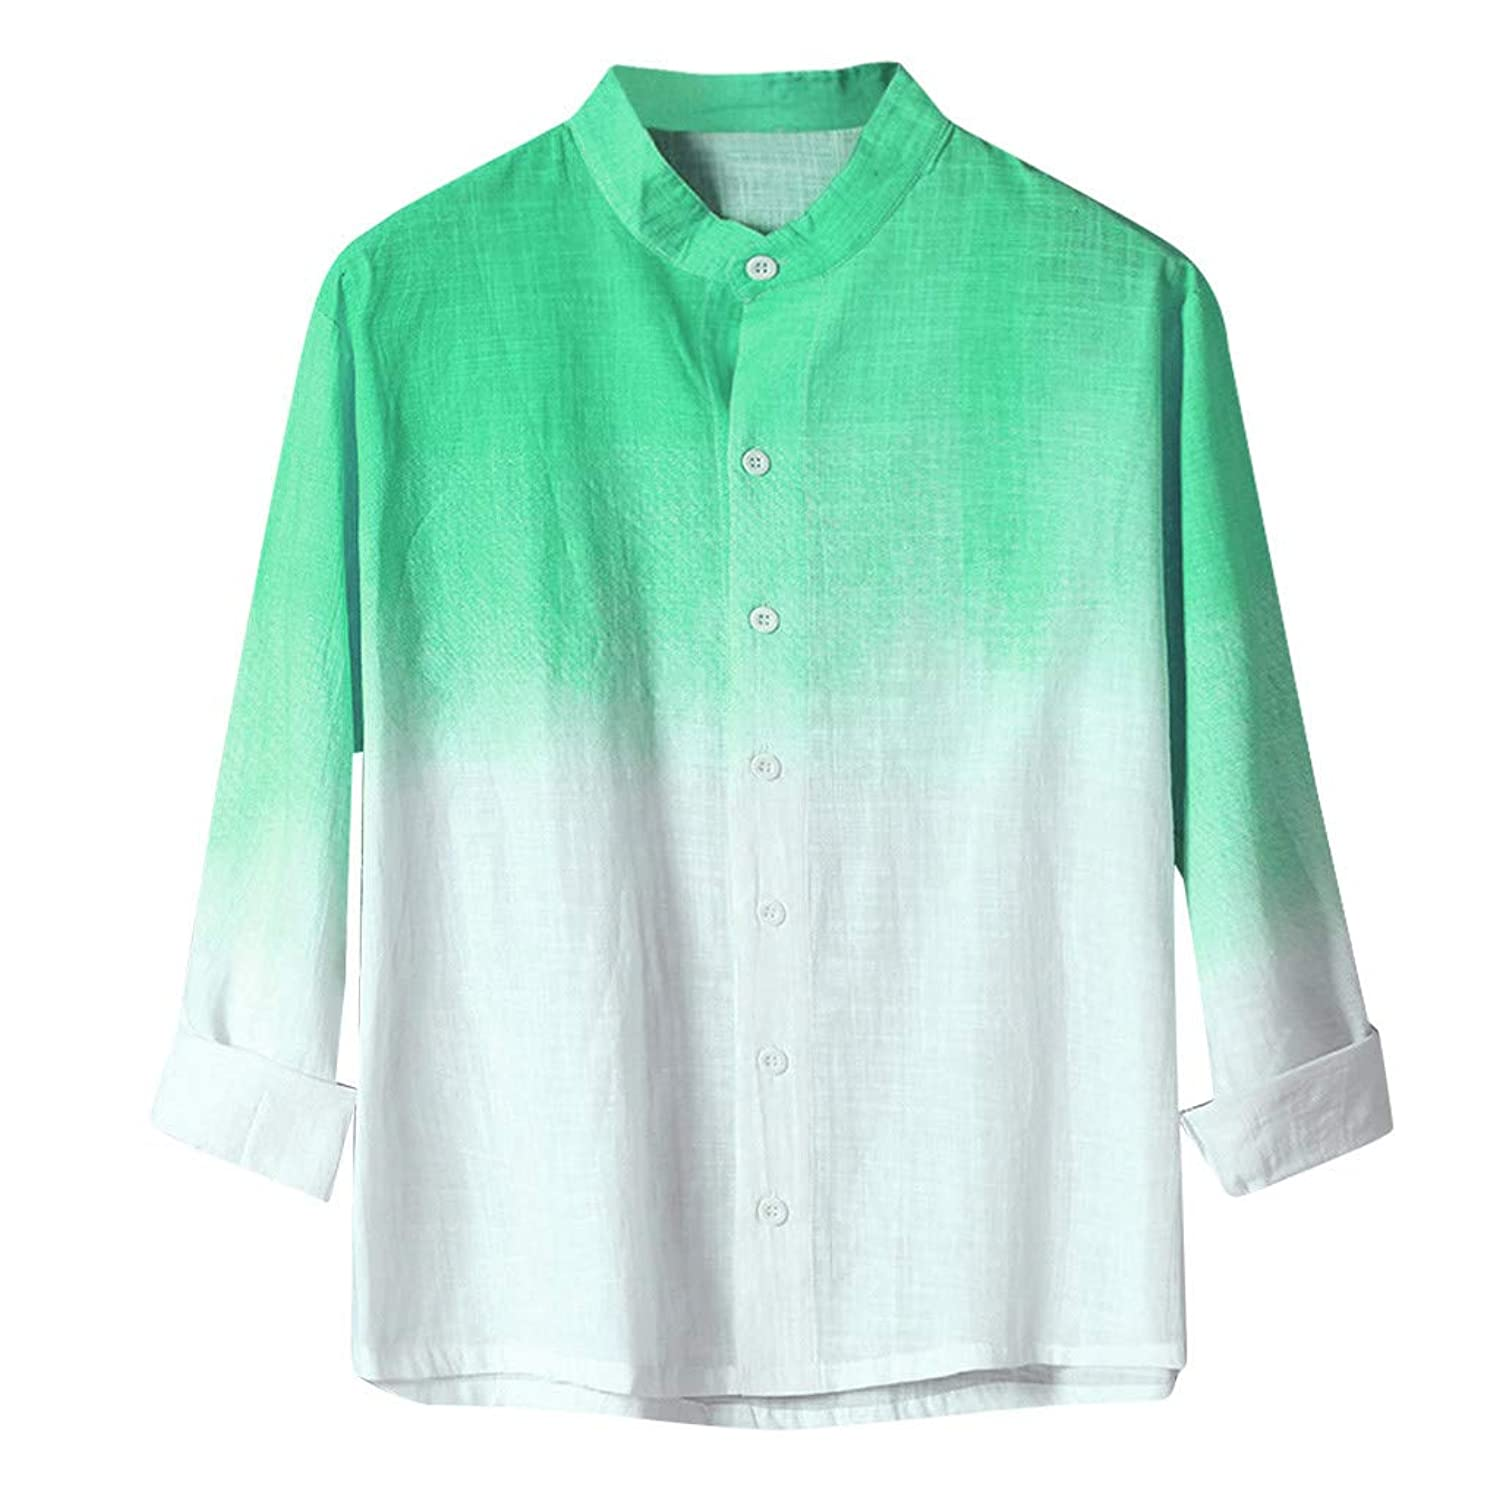 Sherostore ? Men's Dip Dye Linen Cotton Blend Short Sleeve Casual Shirt Gradient Shirts for Vacation